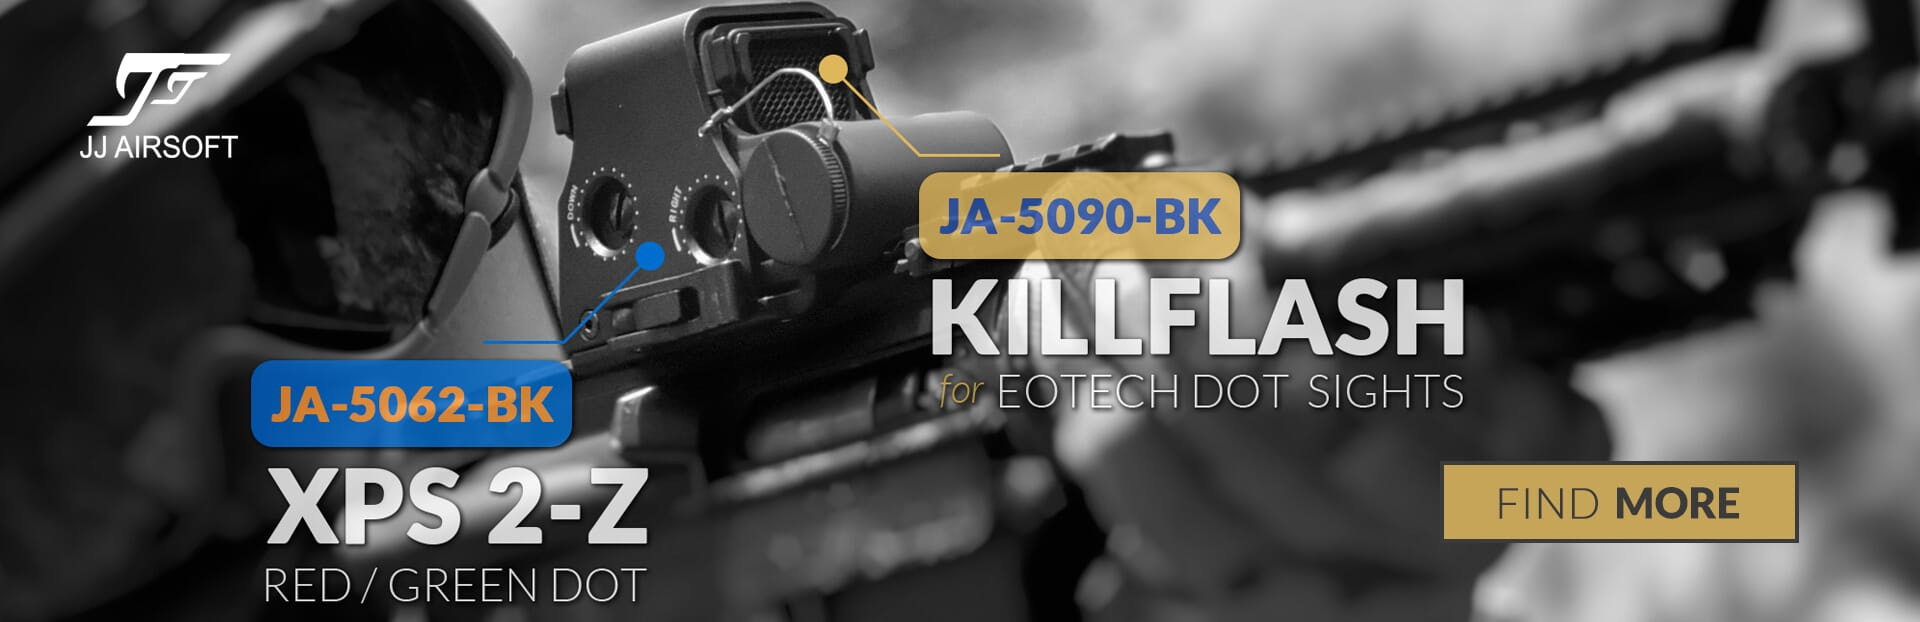 KILLFLASH FOR EOTECH RED DOT SIGHTS - 55X SERIES